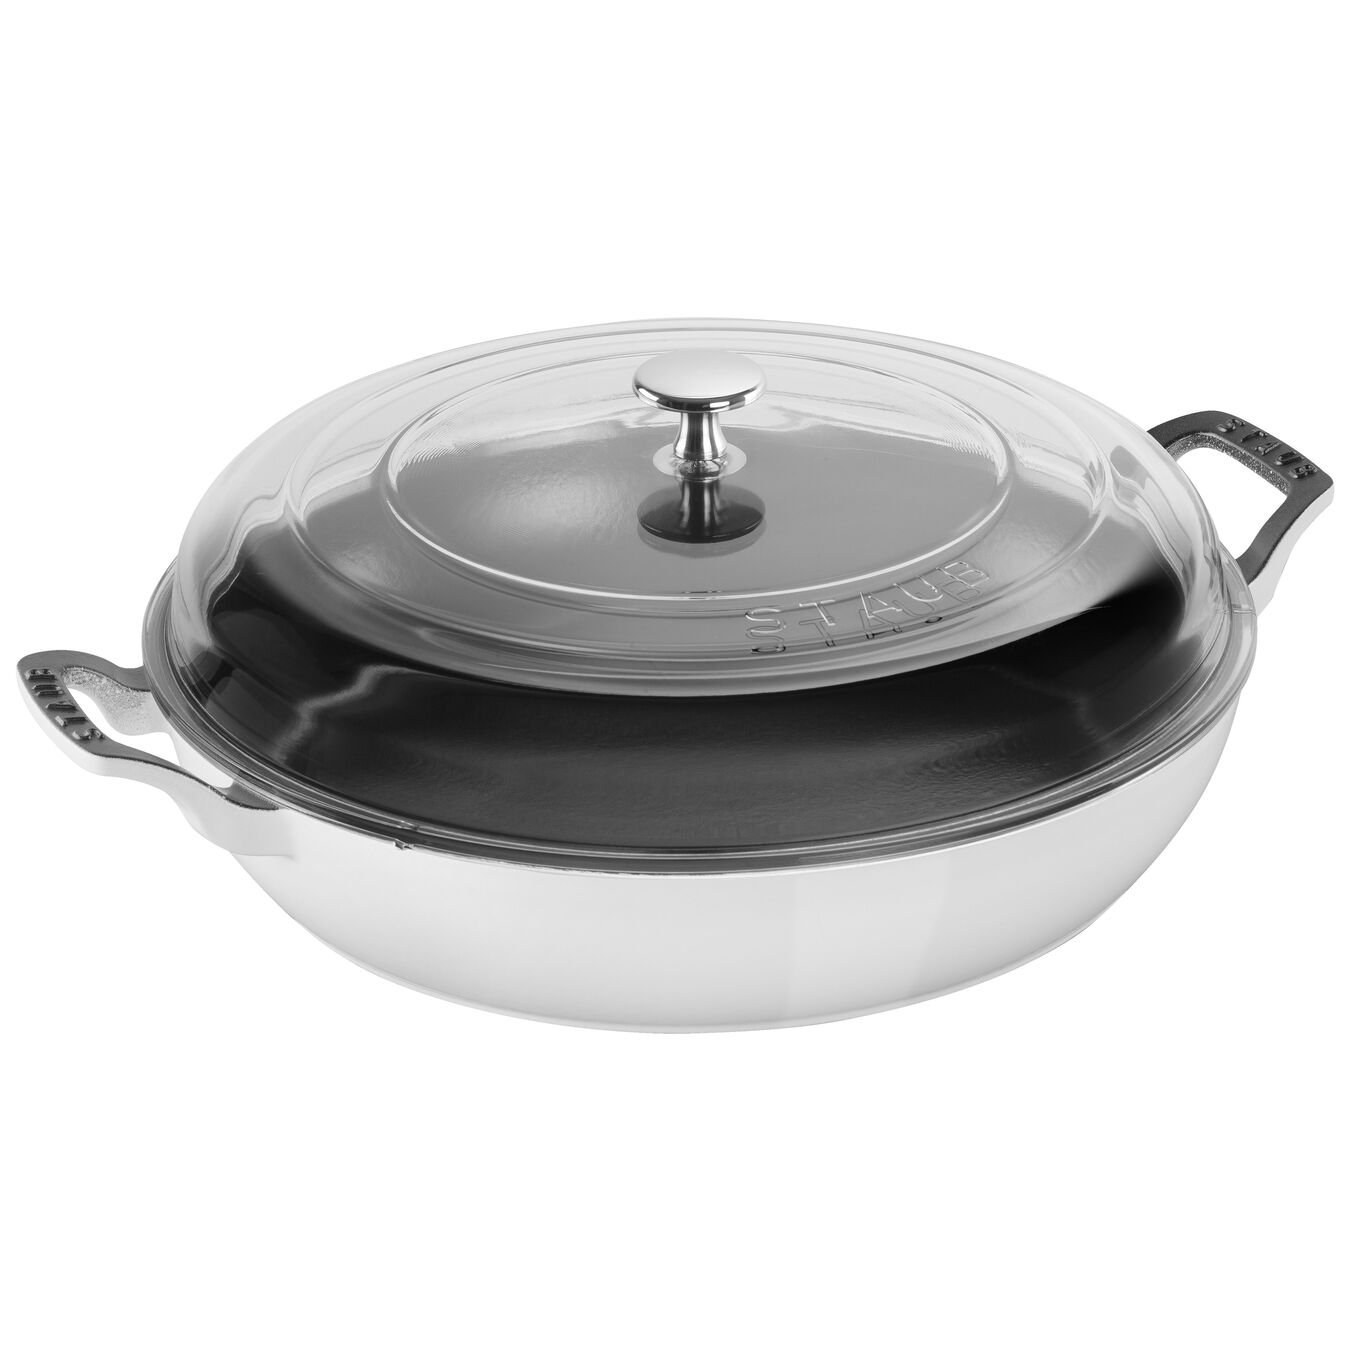 12-inch, Braiser with Glass Lid, white,,large 1